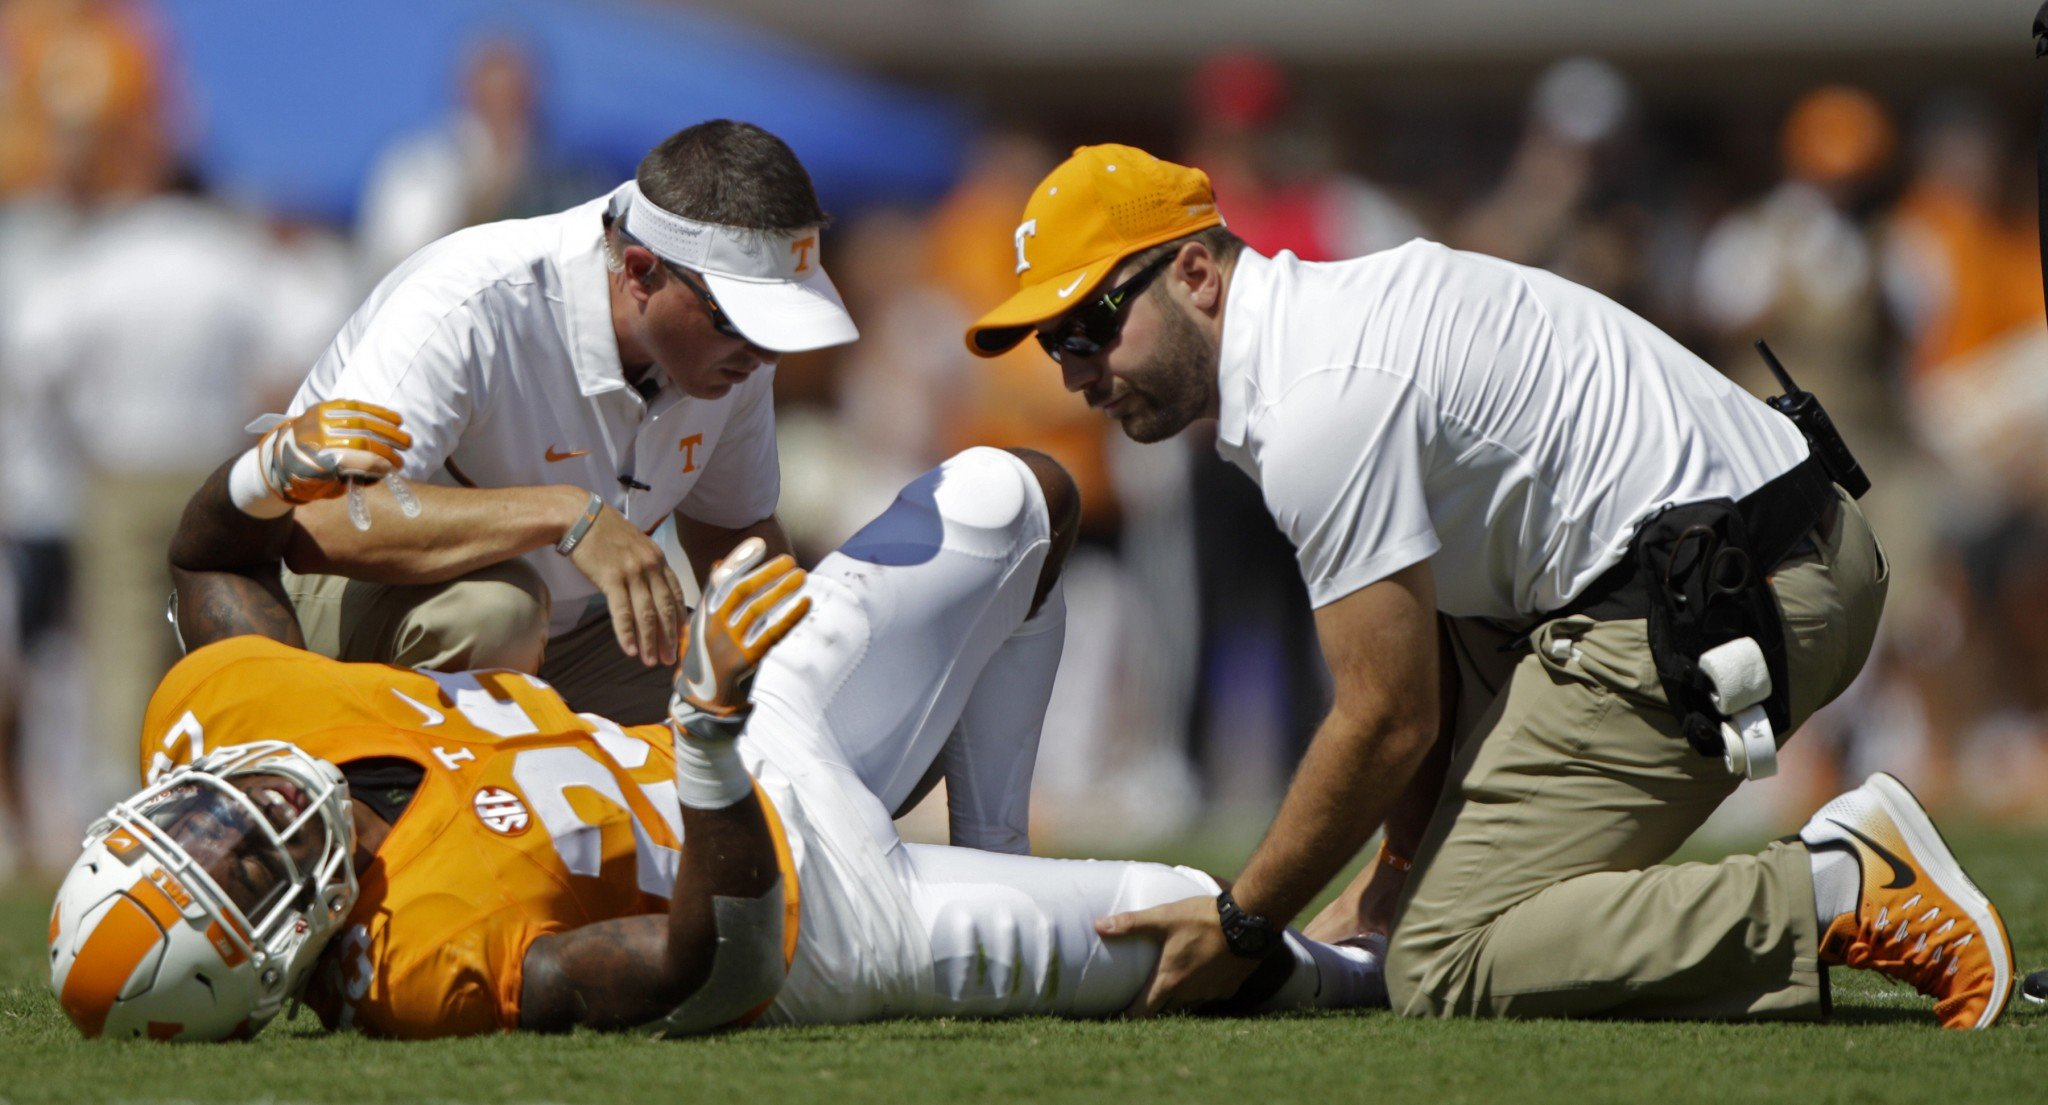 Tennessee defensive back Cameron Sutton (23) is attended to after being injured in the first half of an NCAA college football game against Ohio Saturday, Sept. 17, 2016, in Knoxville, Tenn. (AP)